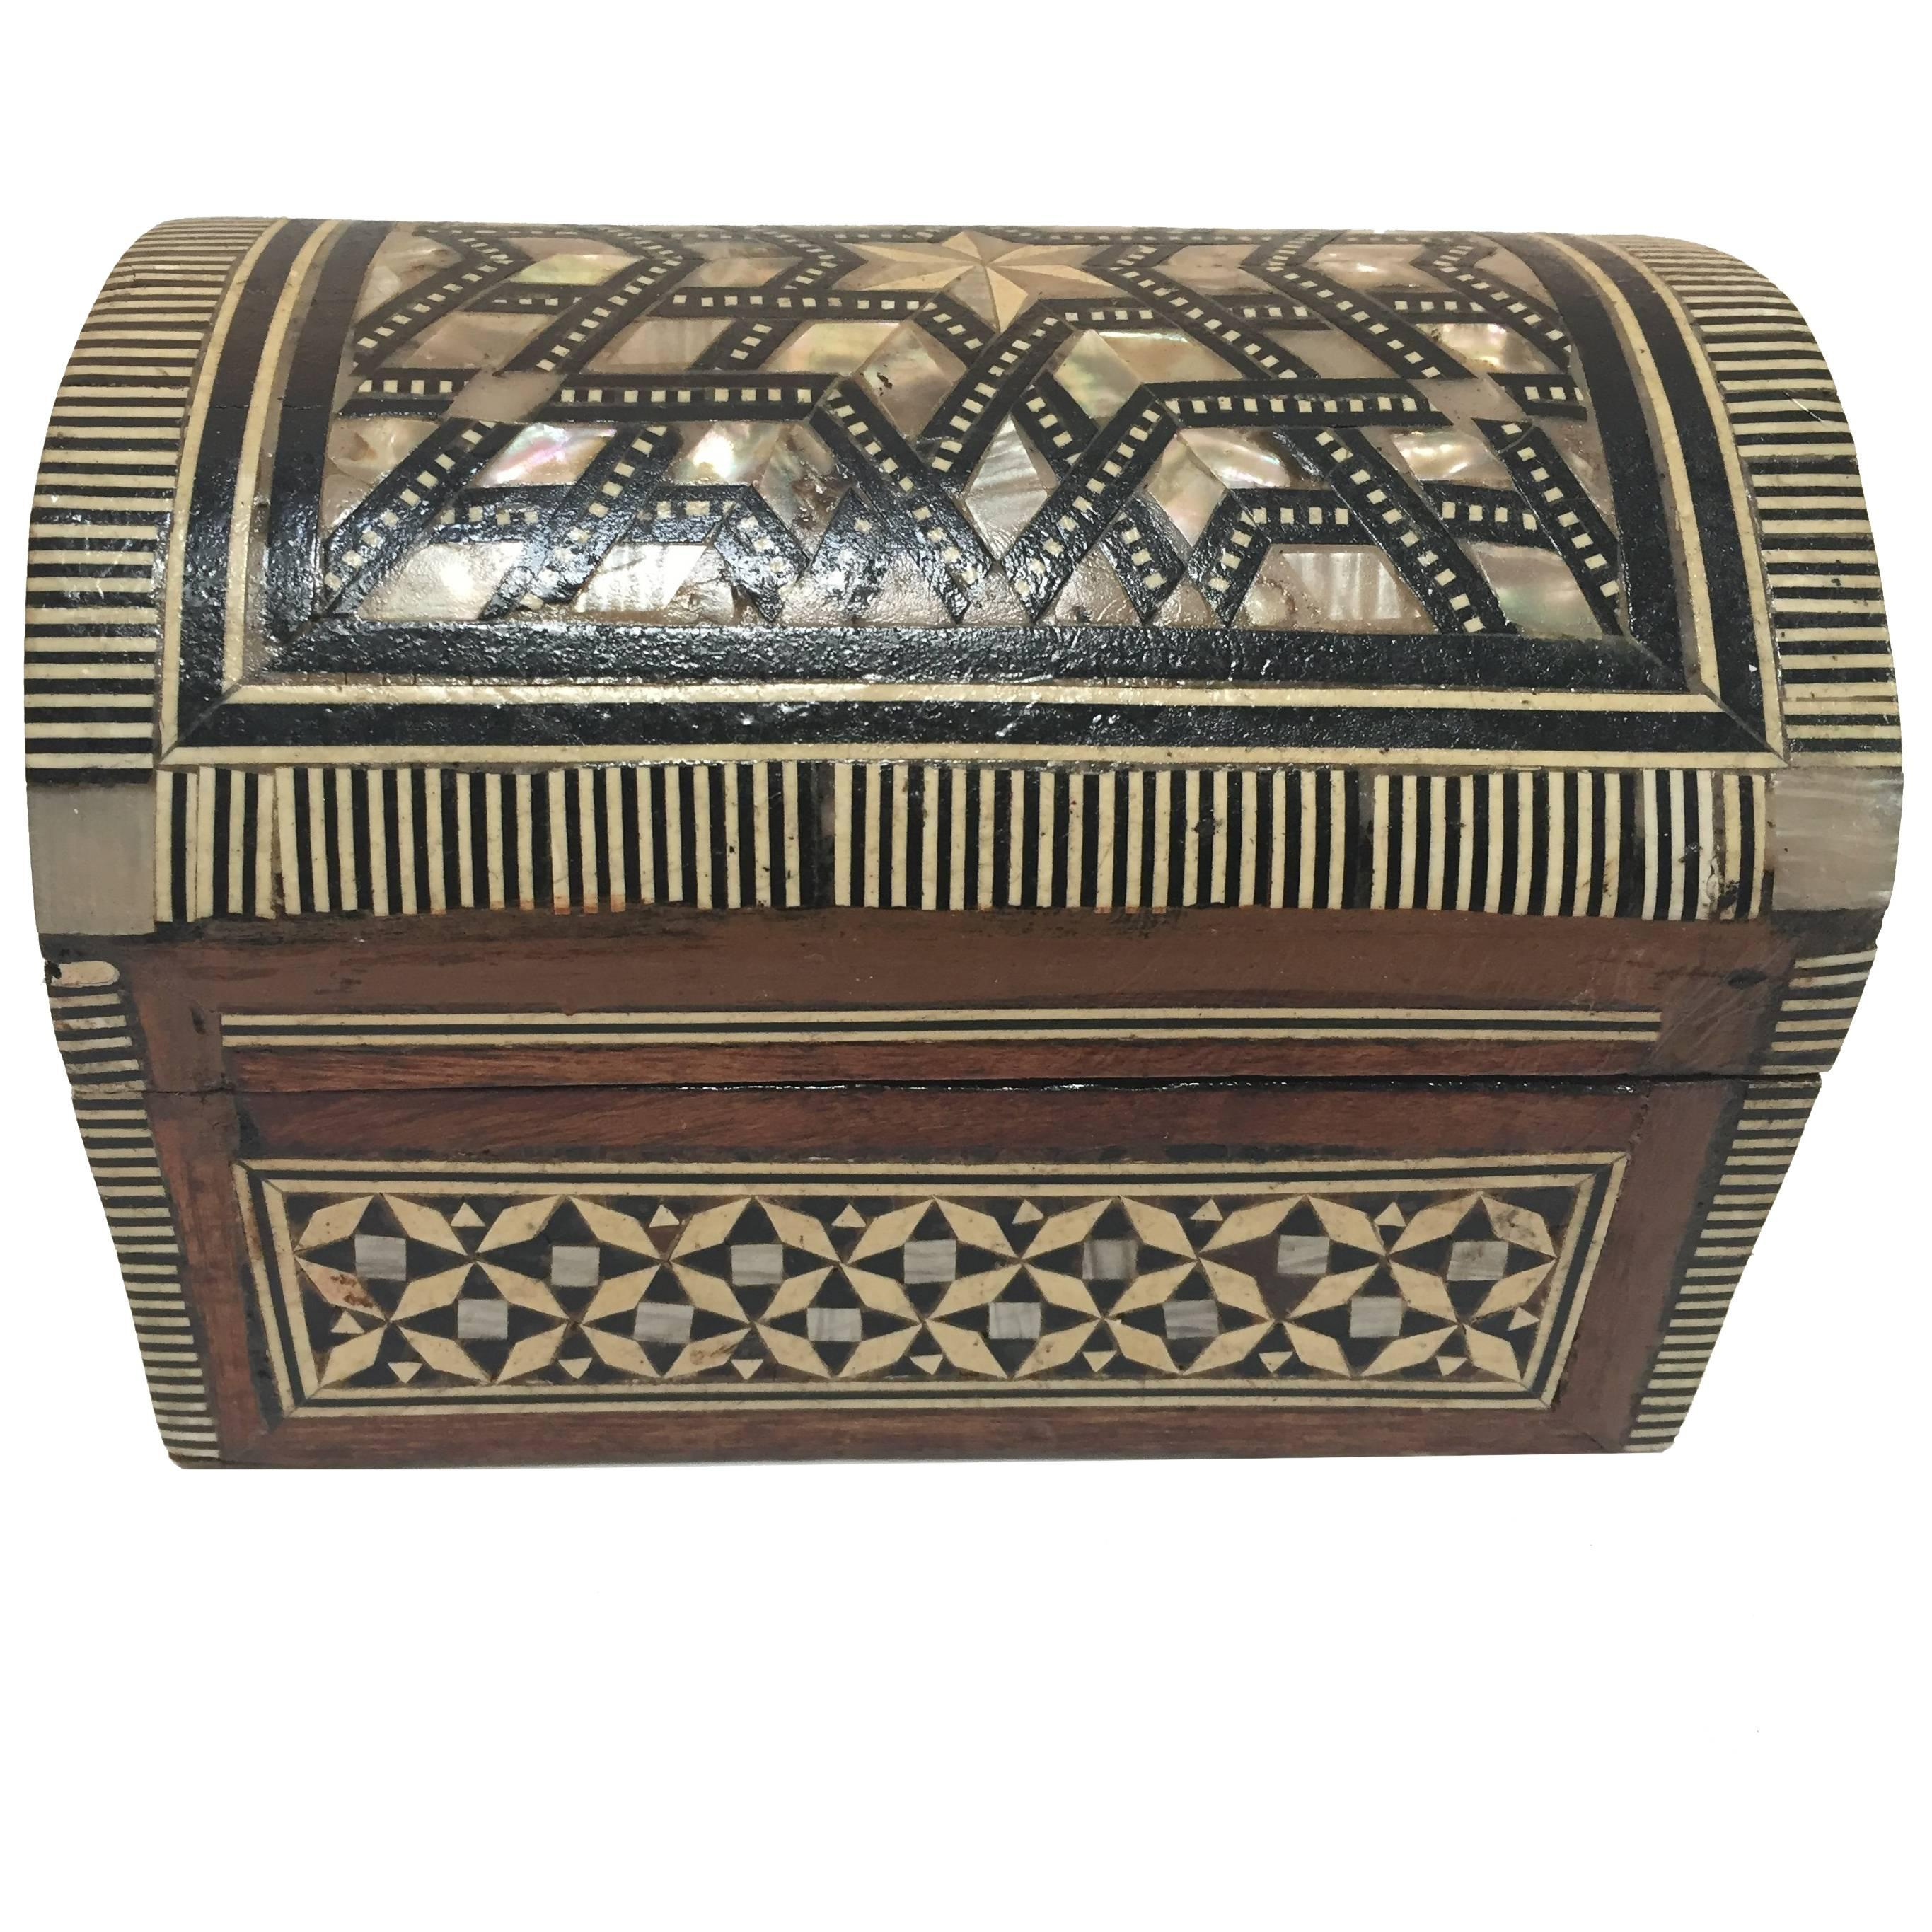 Middle Eastern Syrian MotherofPearl Inlaid Jewelry Box at 1stdibs